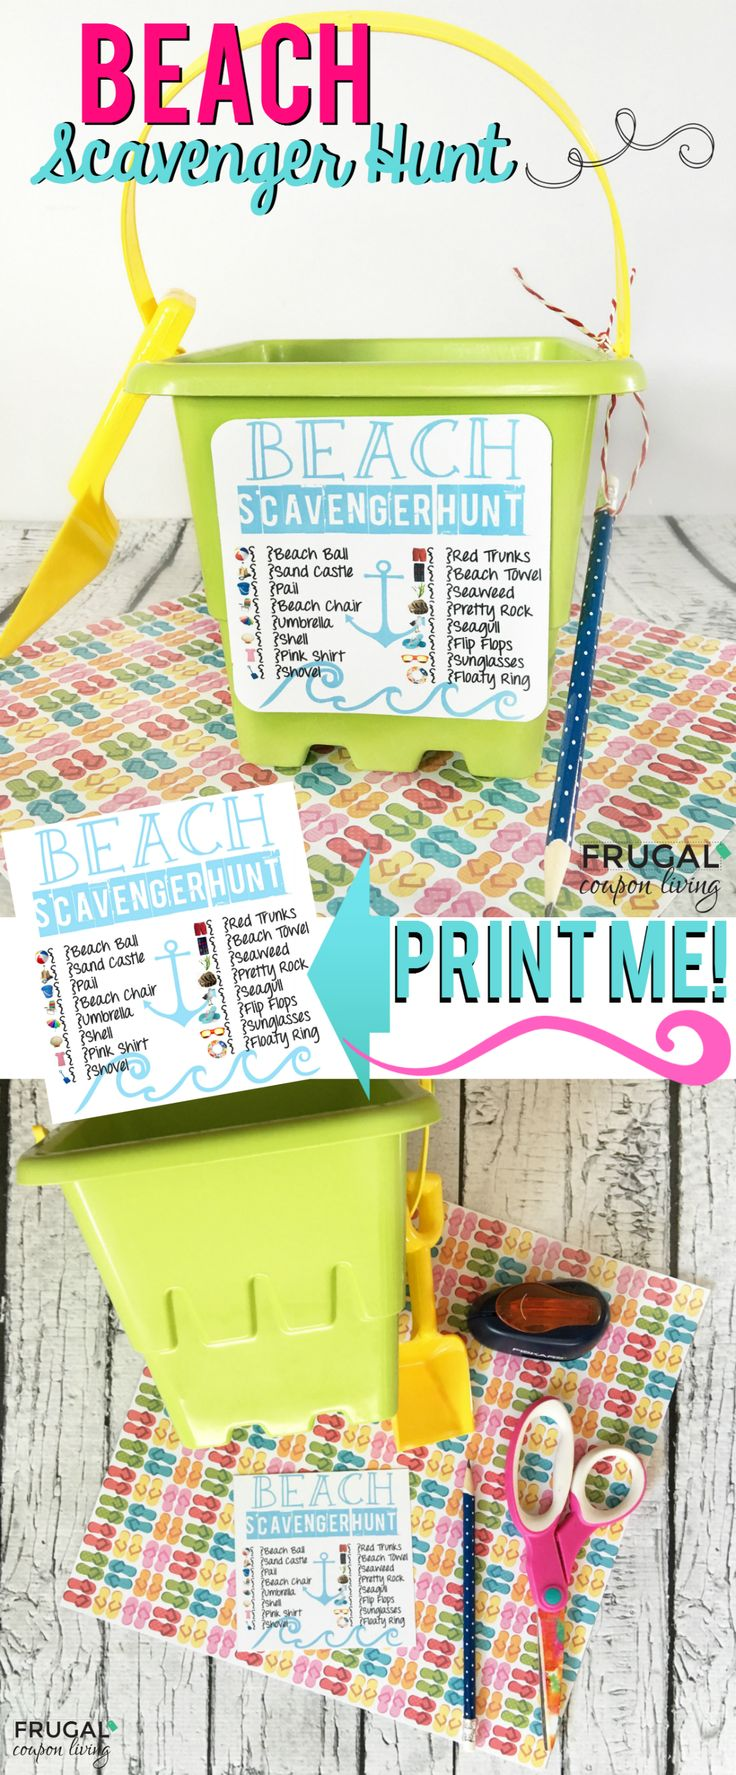 Looking for a fun activity for the beach? This Beach Scavenger Hunt is sure to keep the kids busy. Get your free printable, glue or tape to a sand bucket and enjoy! Free beach printable on Frugal Coupon Living.